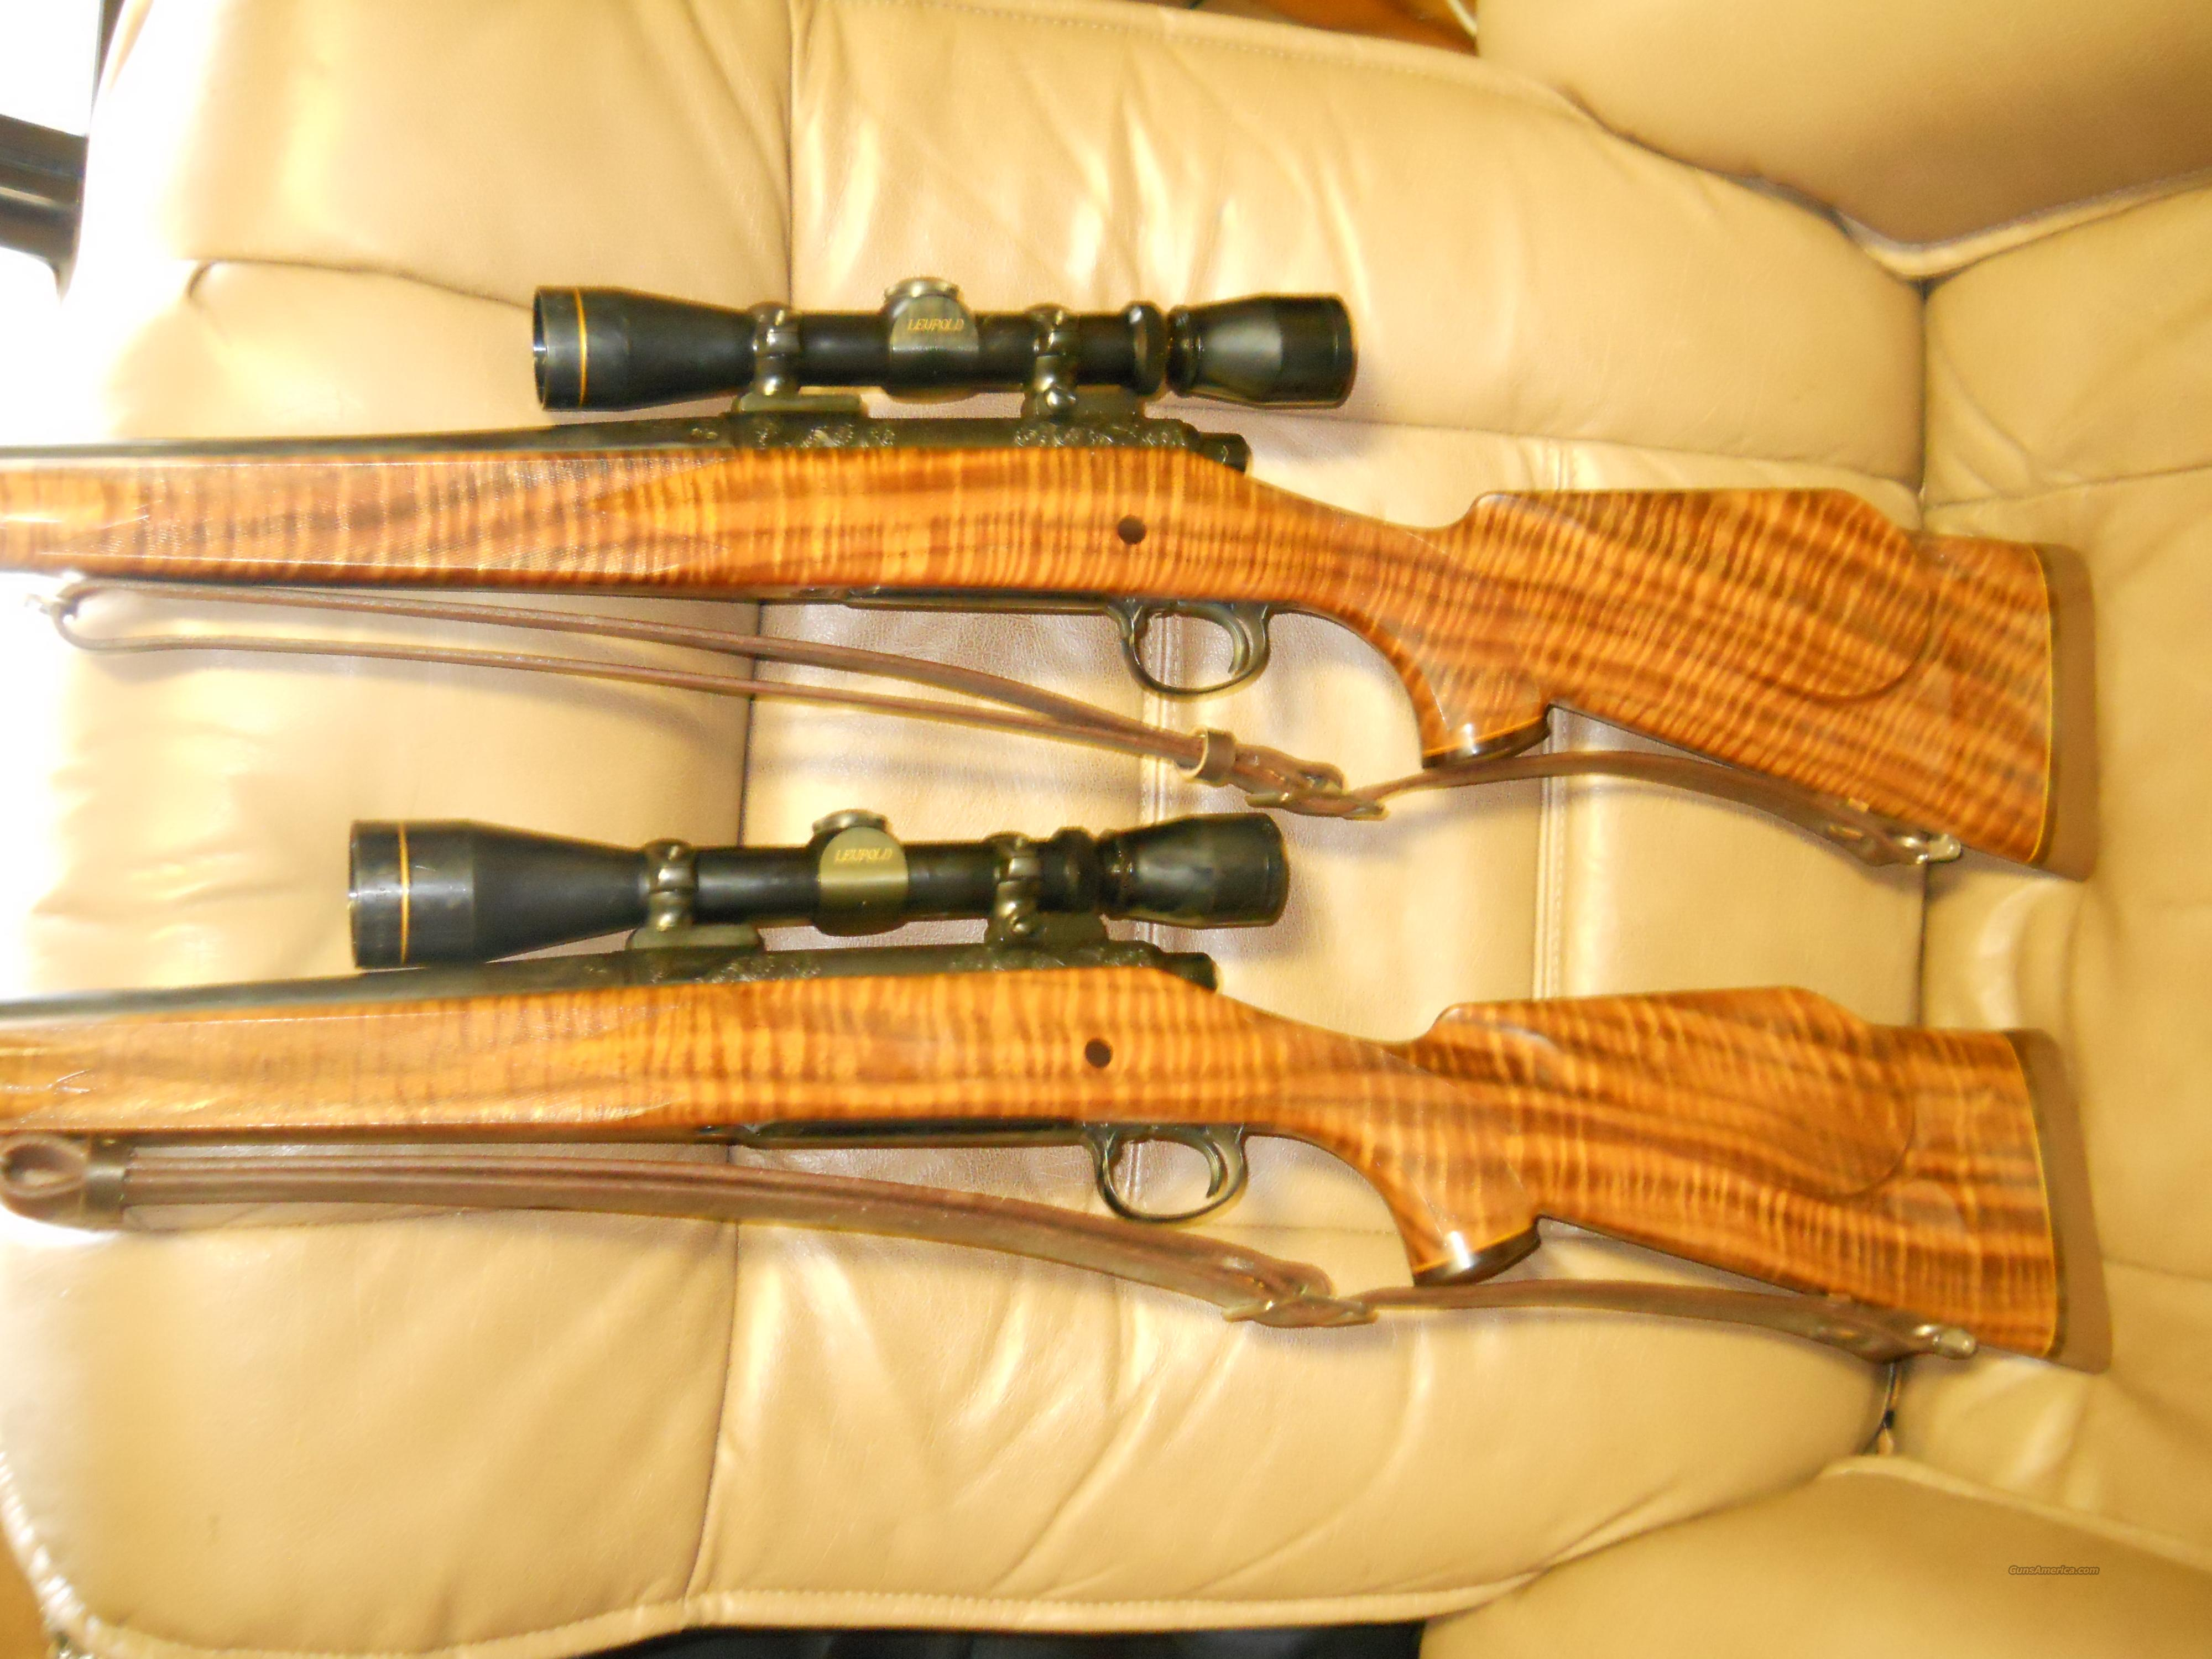 remington model 700 custom model111  Guns > Rifles > Remington Rifles - Modern > Model 700 > Sporting